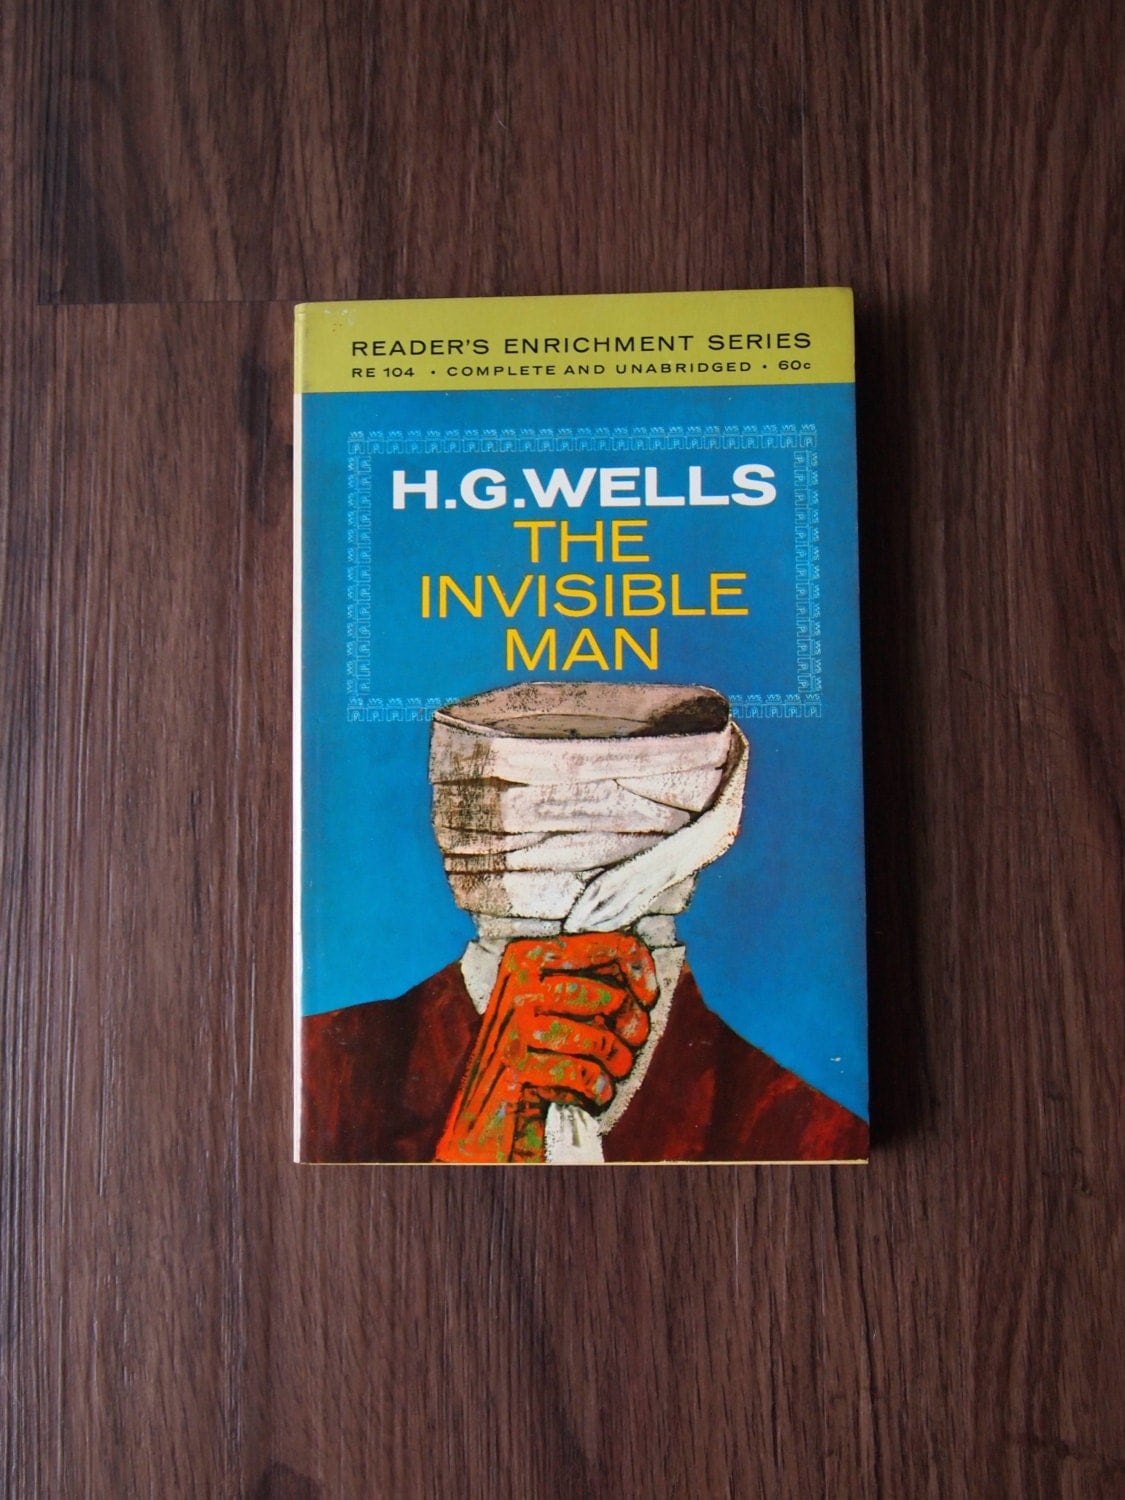 the invisible man by hg wells essay The invisible man is a science fiction novel by h g wellsoriginally serialized in pearson's weekly in 1897, it was published as a novel the same year the invisible man of the title is griffin, a scientist who has devoted himself to research into optics and invents a way to change a body's refractive index to that of air so that it neither absorbs nor reflects light and thus becomes invisible.